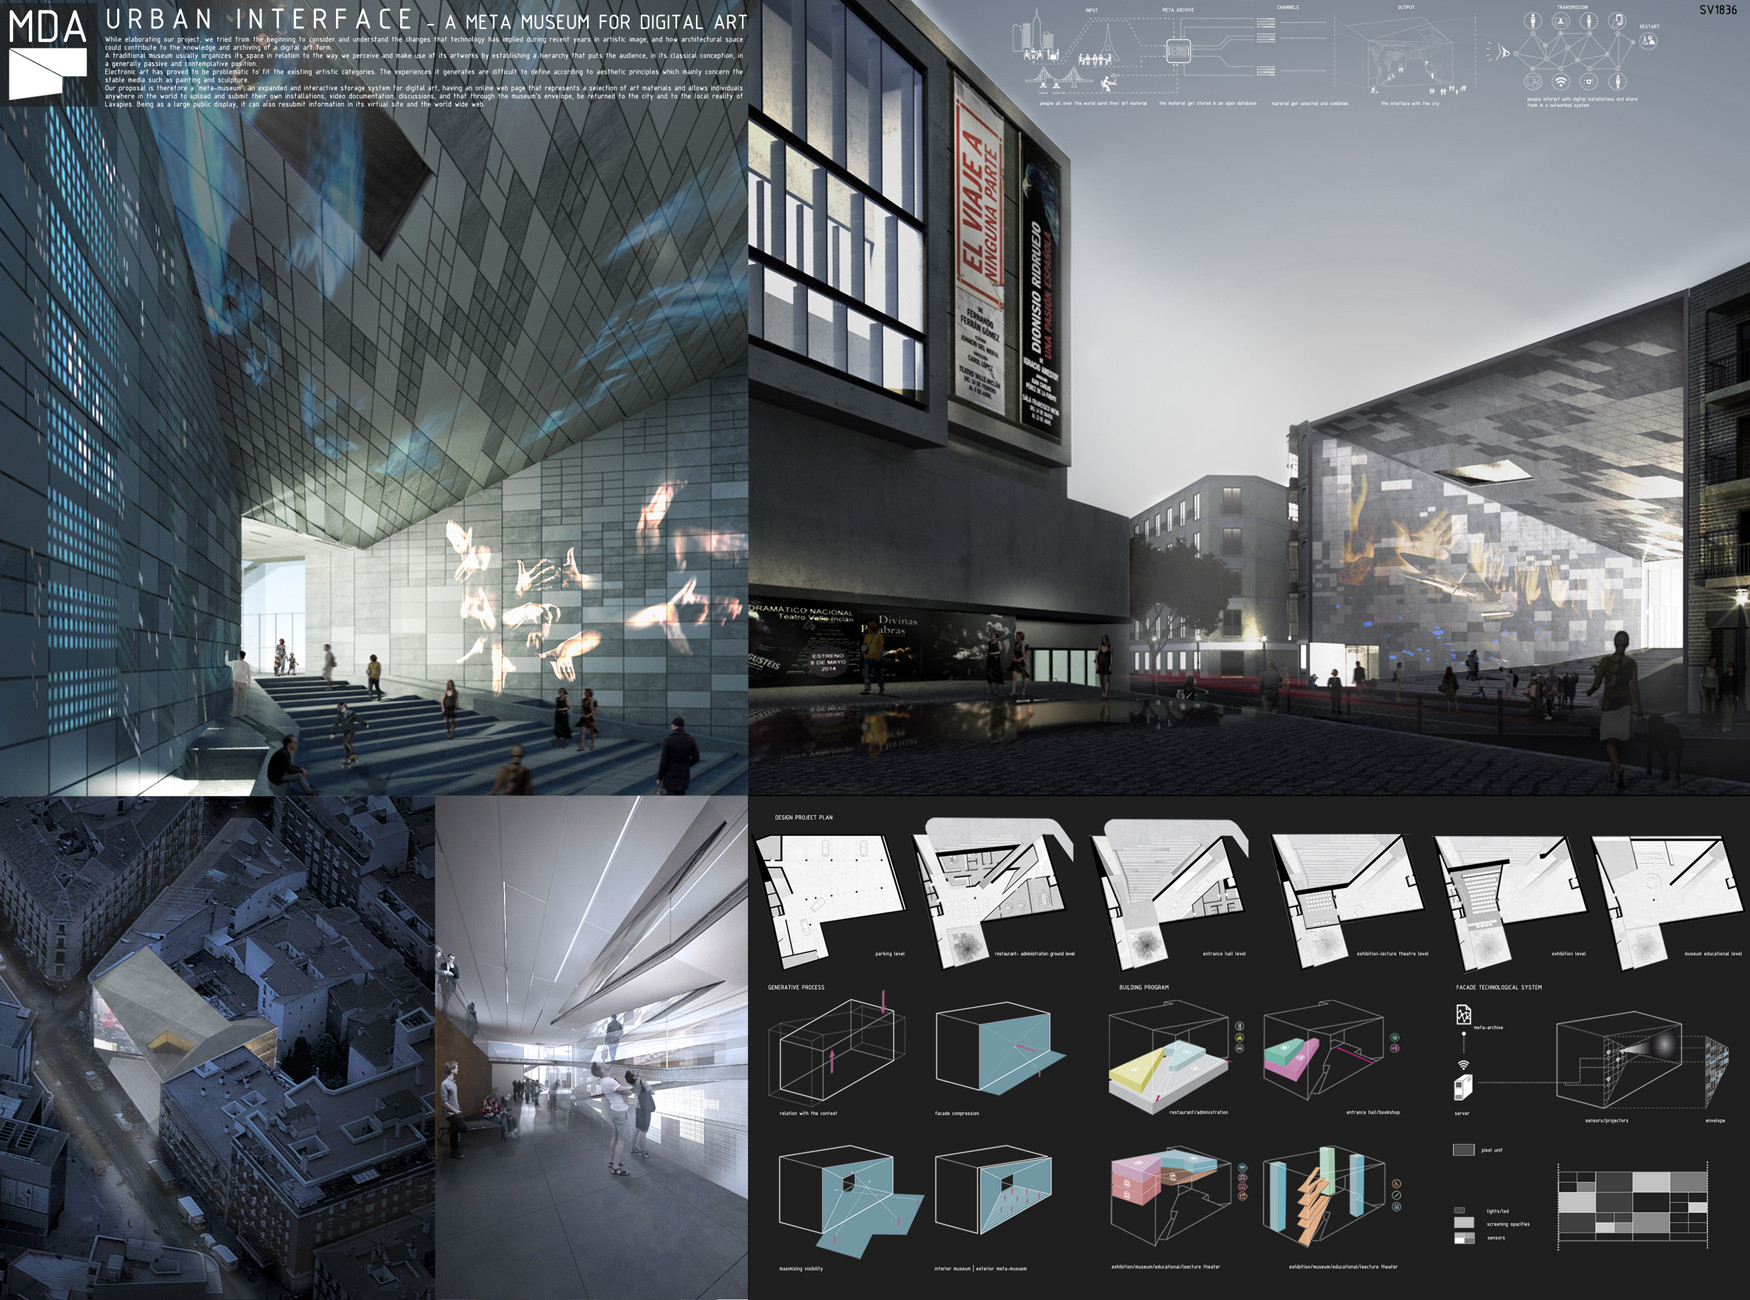 First Prize: Urban Interface / Arch. Michelangelo Vallicelli, Lorenzo Sant'Andrea, Nicolò Troianiello (Rome, Italy). Image Courtesy of Ctrl+Space Architectural Competitions